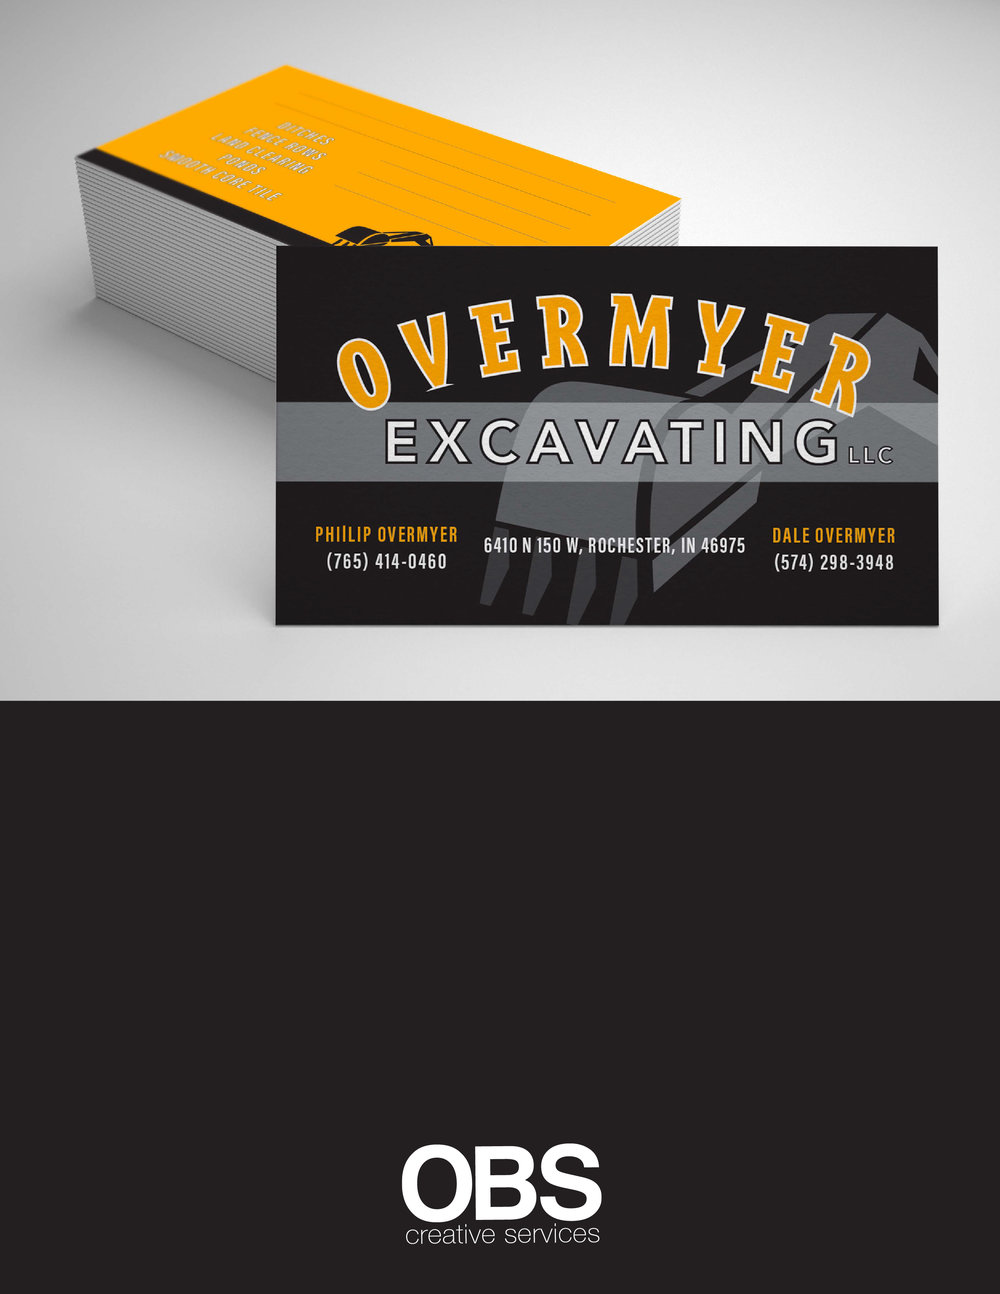 Overmyer Excavating  Business Cards copy.jpg